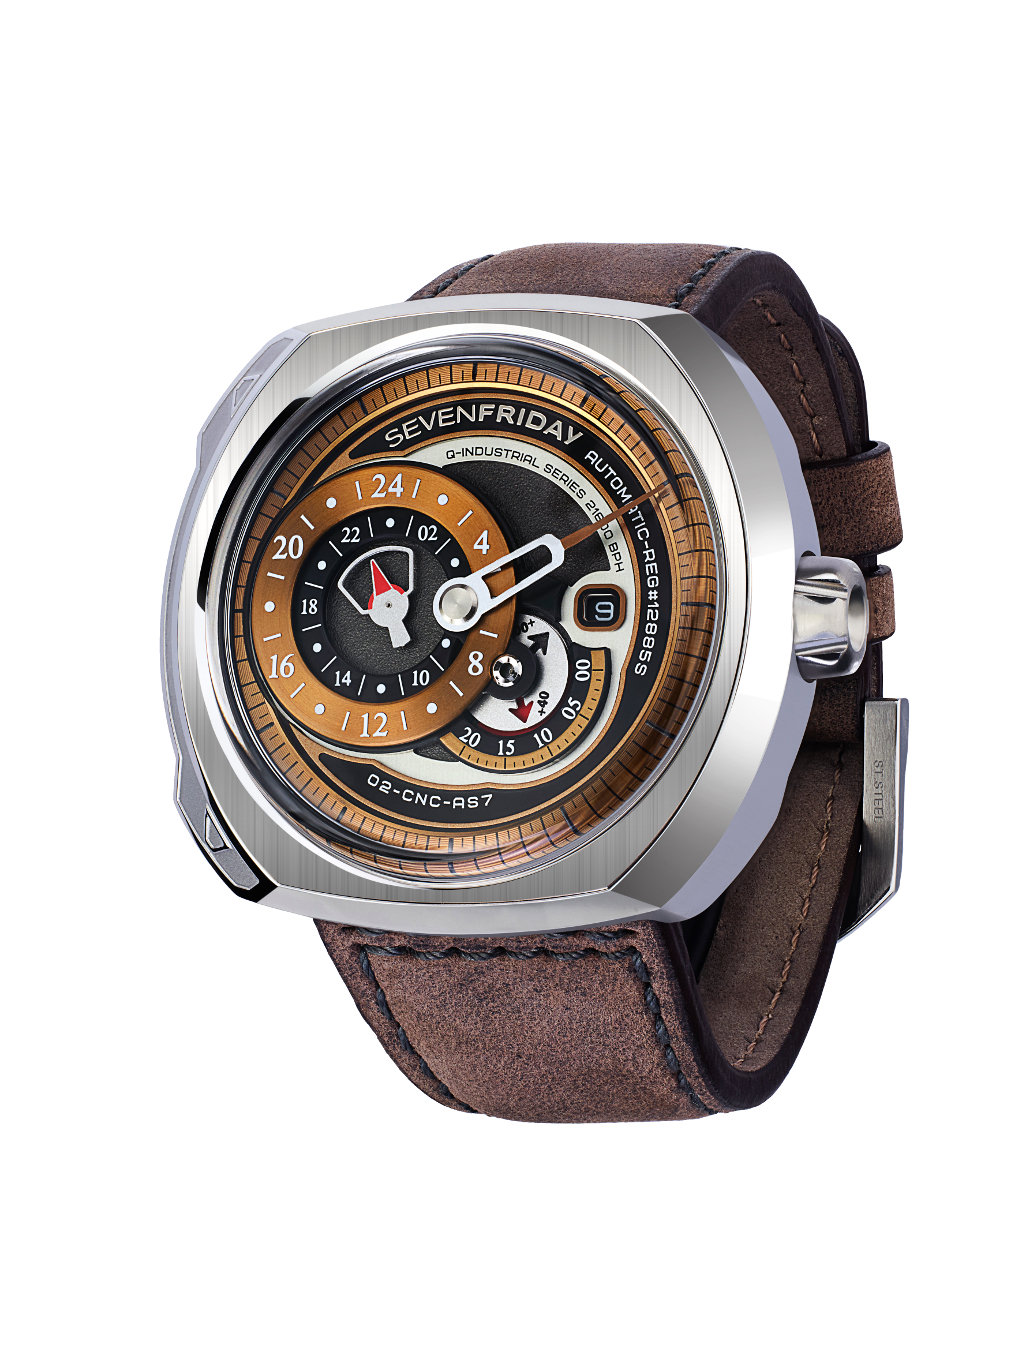 The new Q-series, from SEVENFRIDAY.